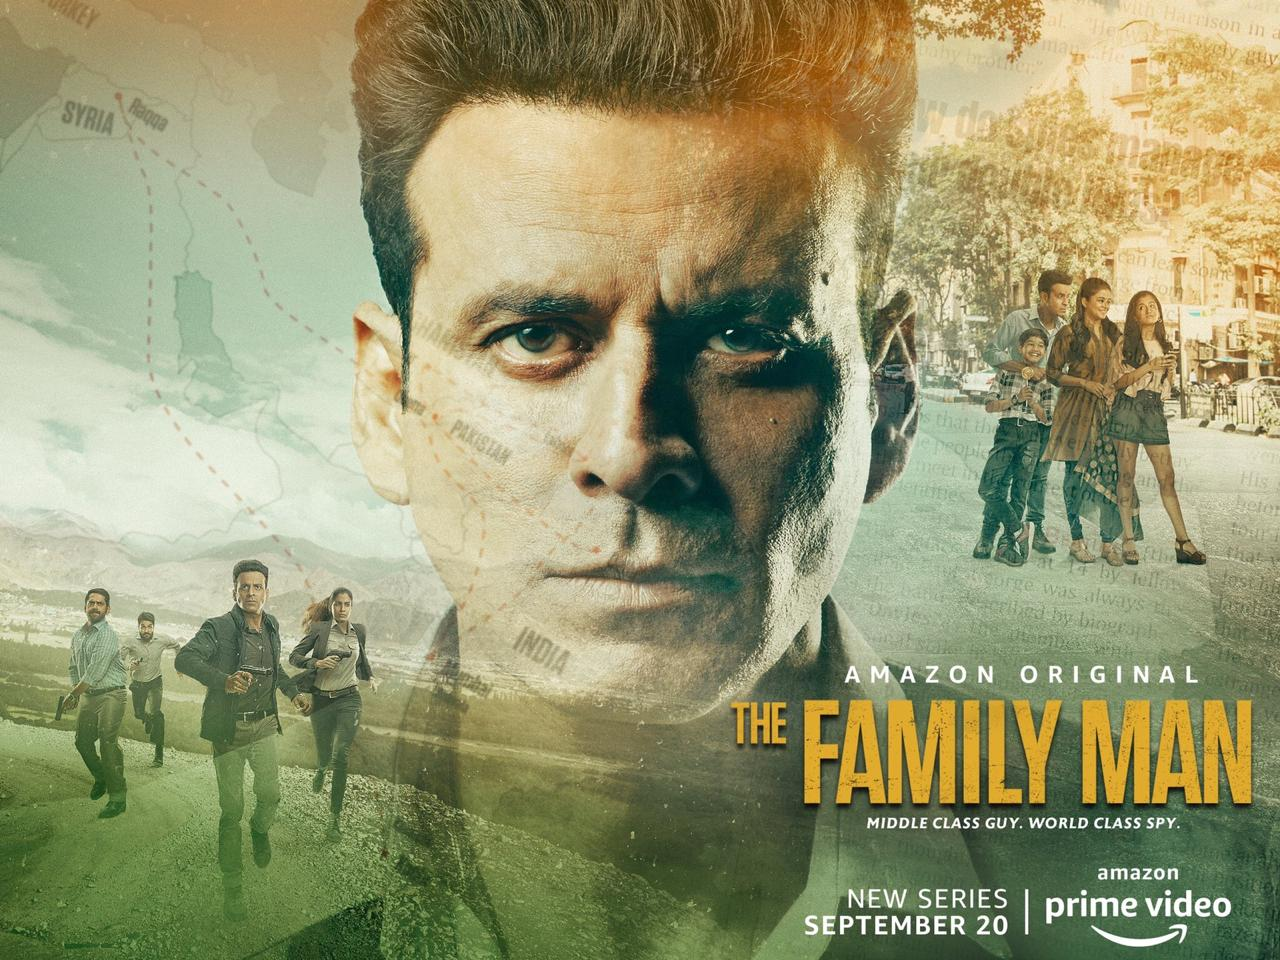 The Family Man S01 (2019) Hindi Complete Web Series 1.3GB HDRip Download